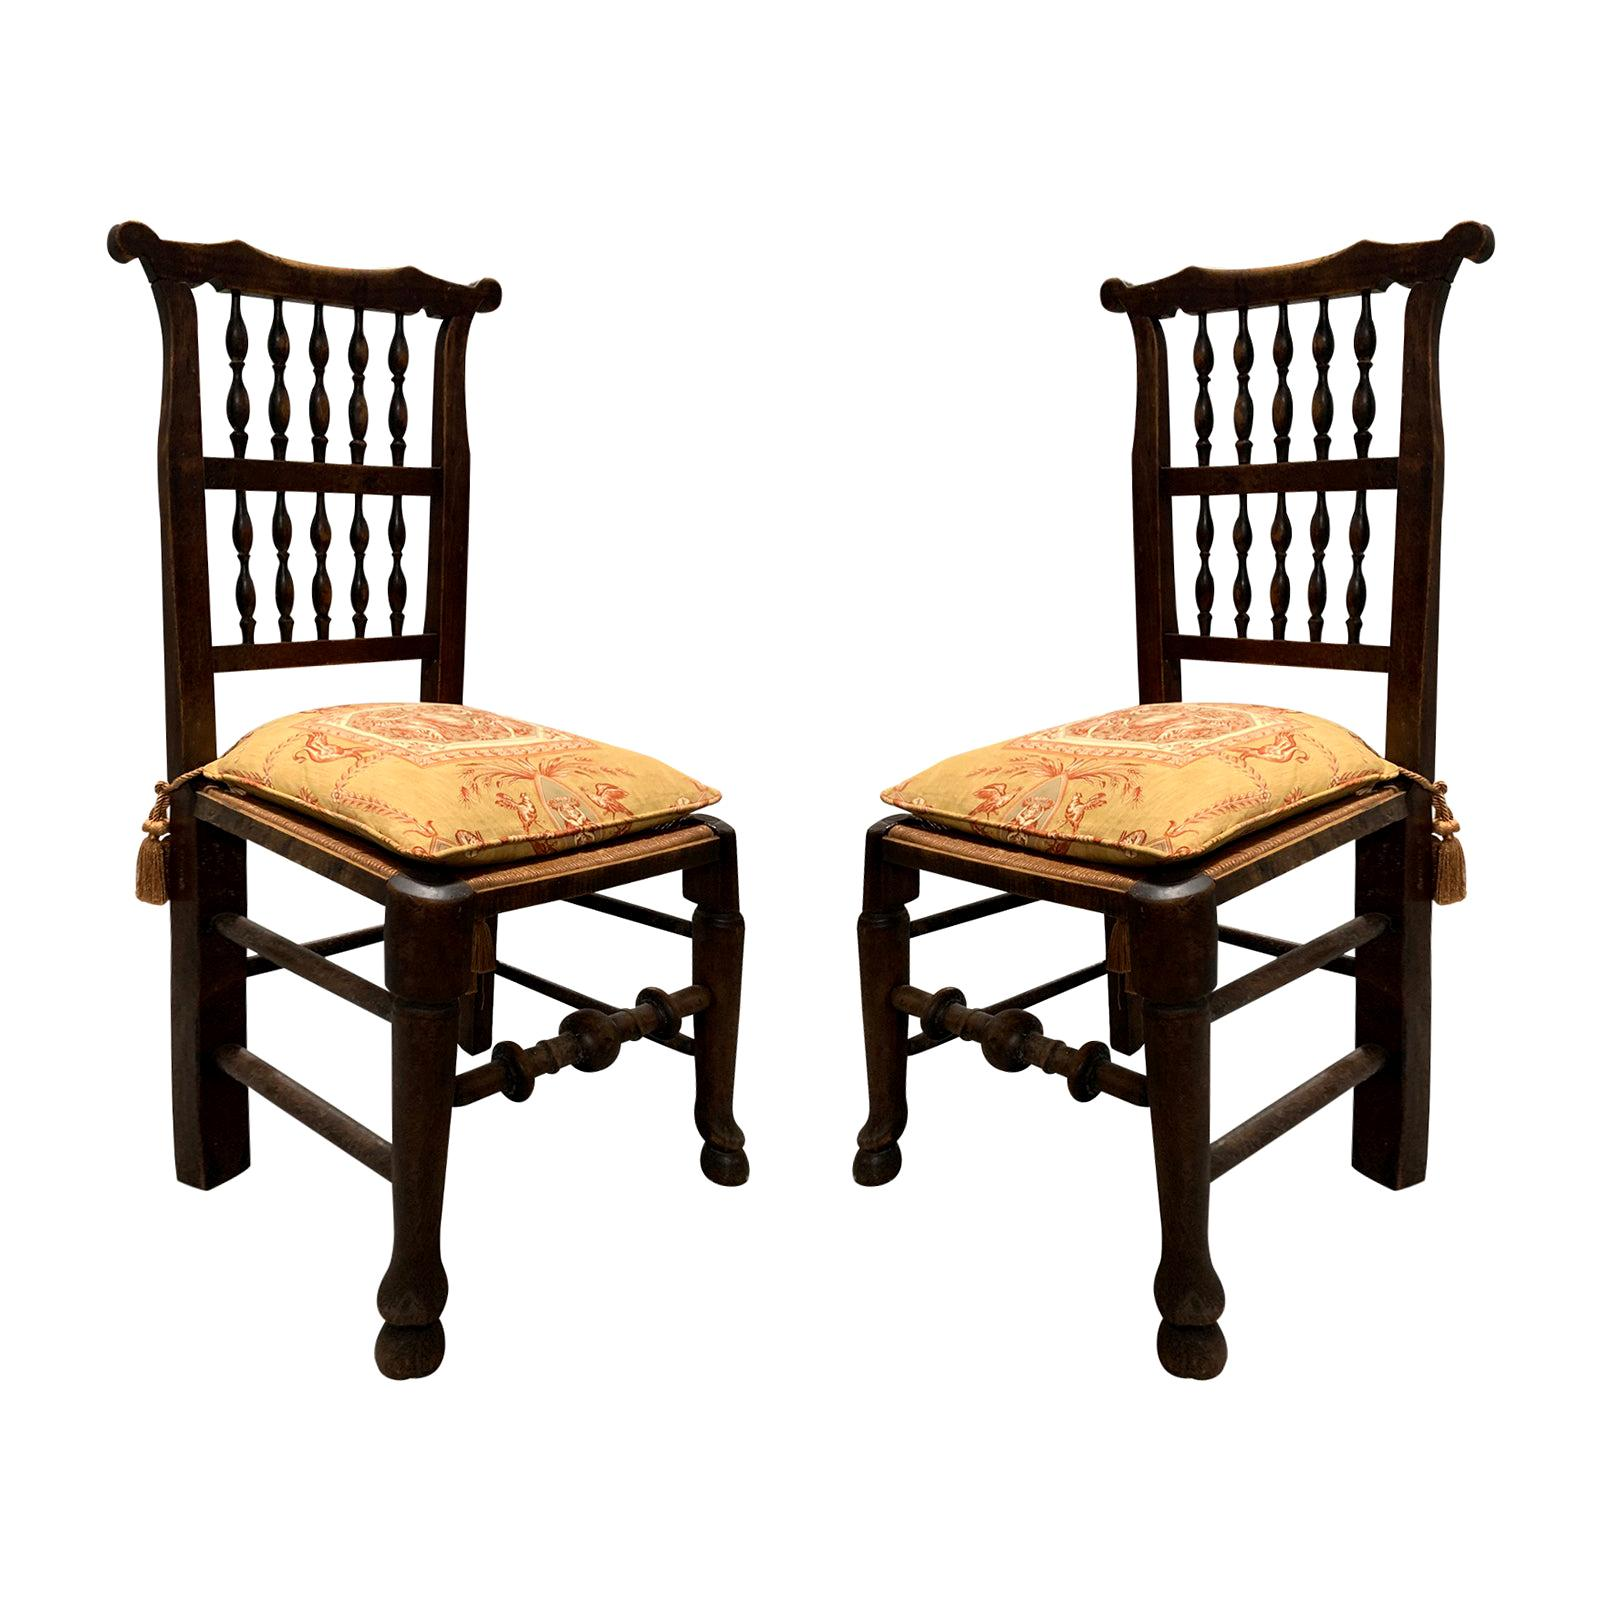 Pair of 19th Century English Spindle Back Side Chairs, Rush Seats and Cushions